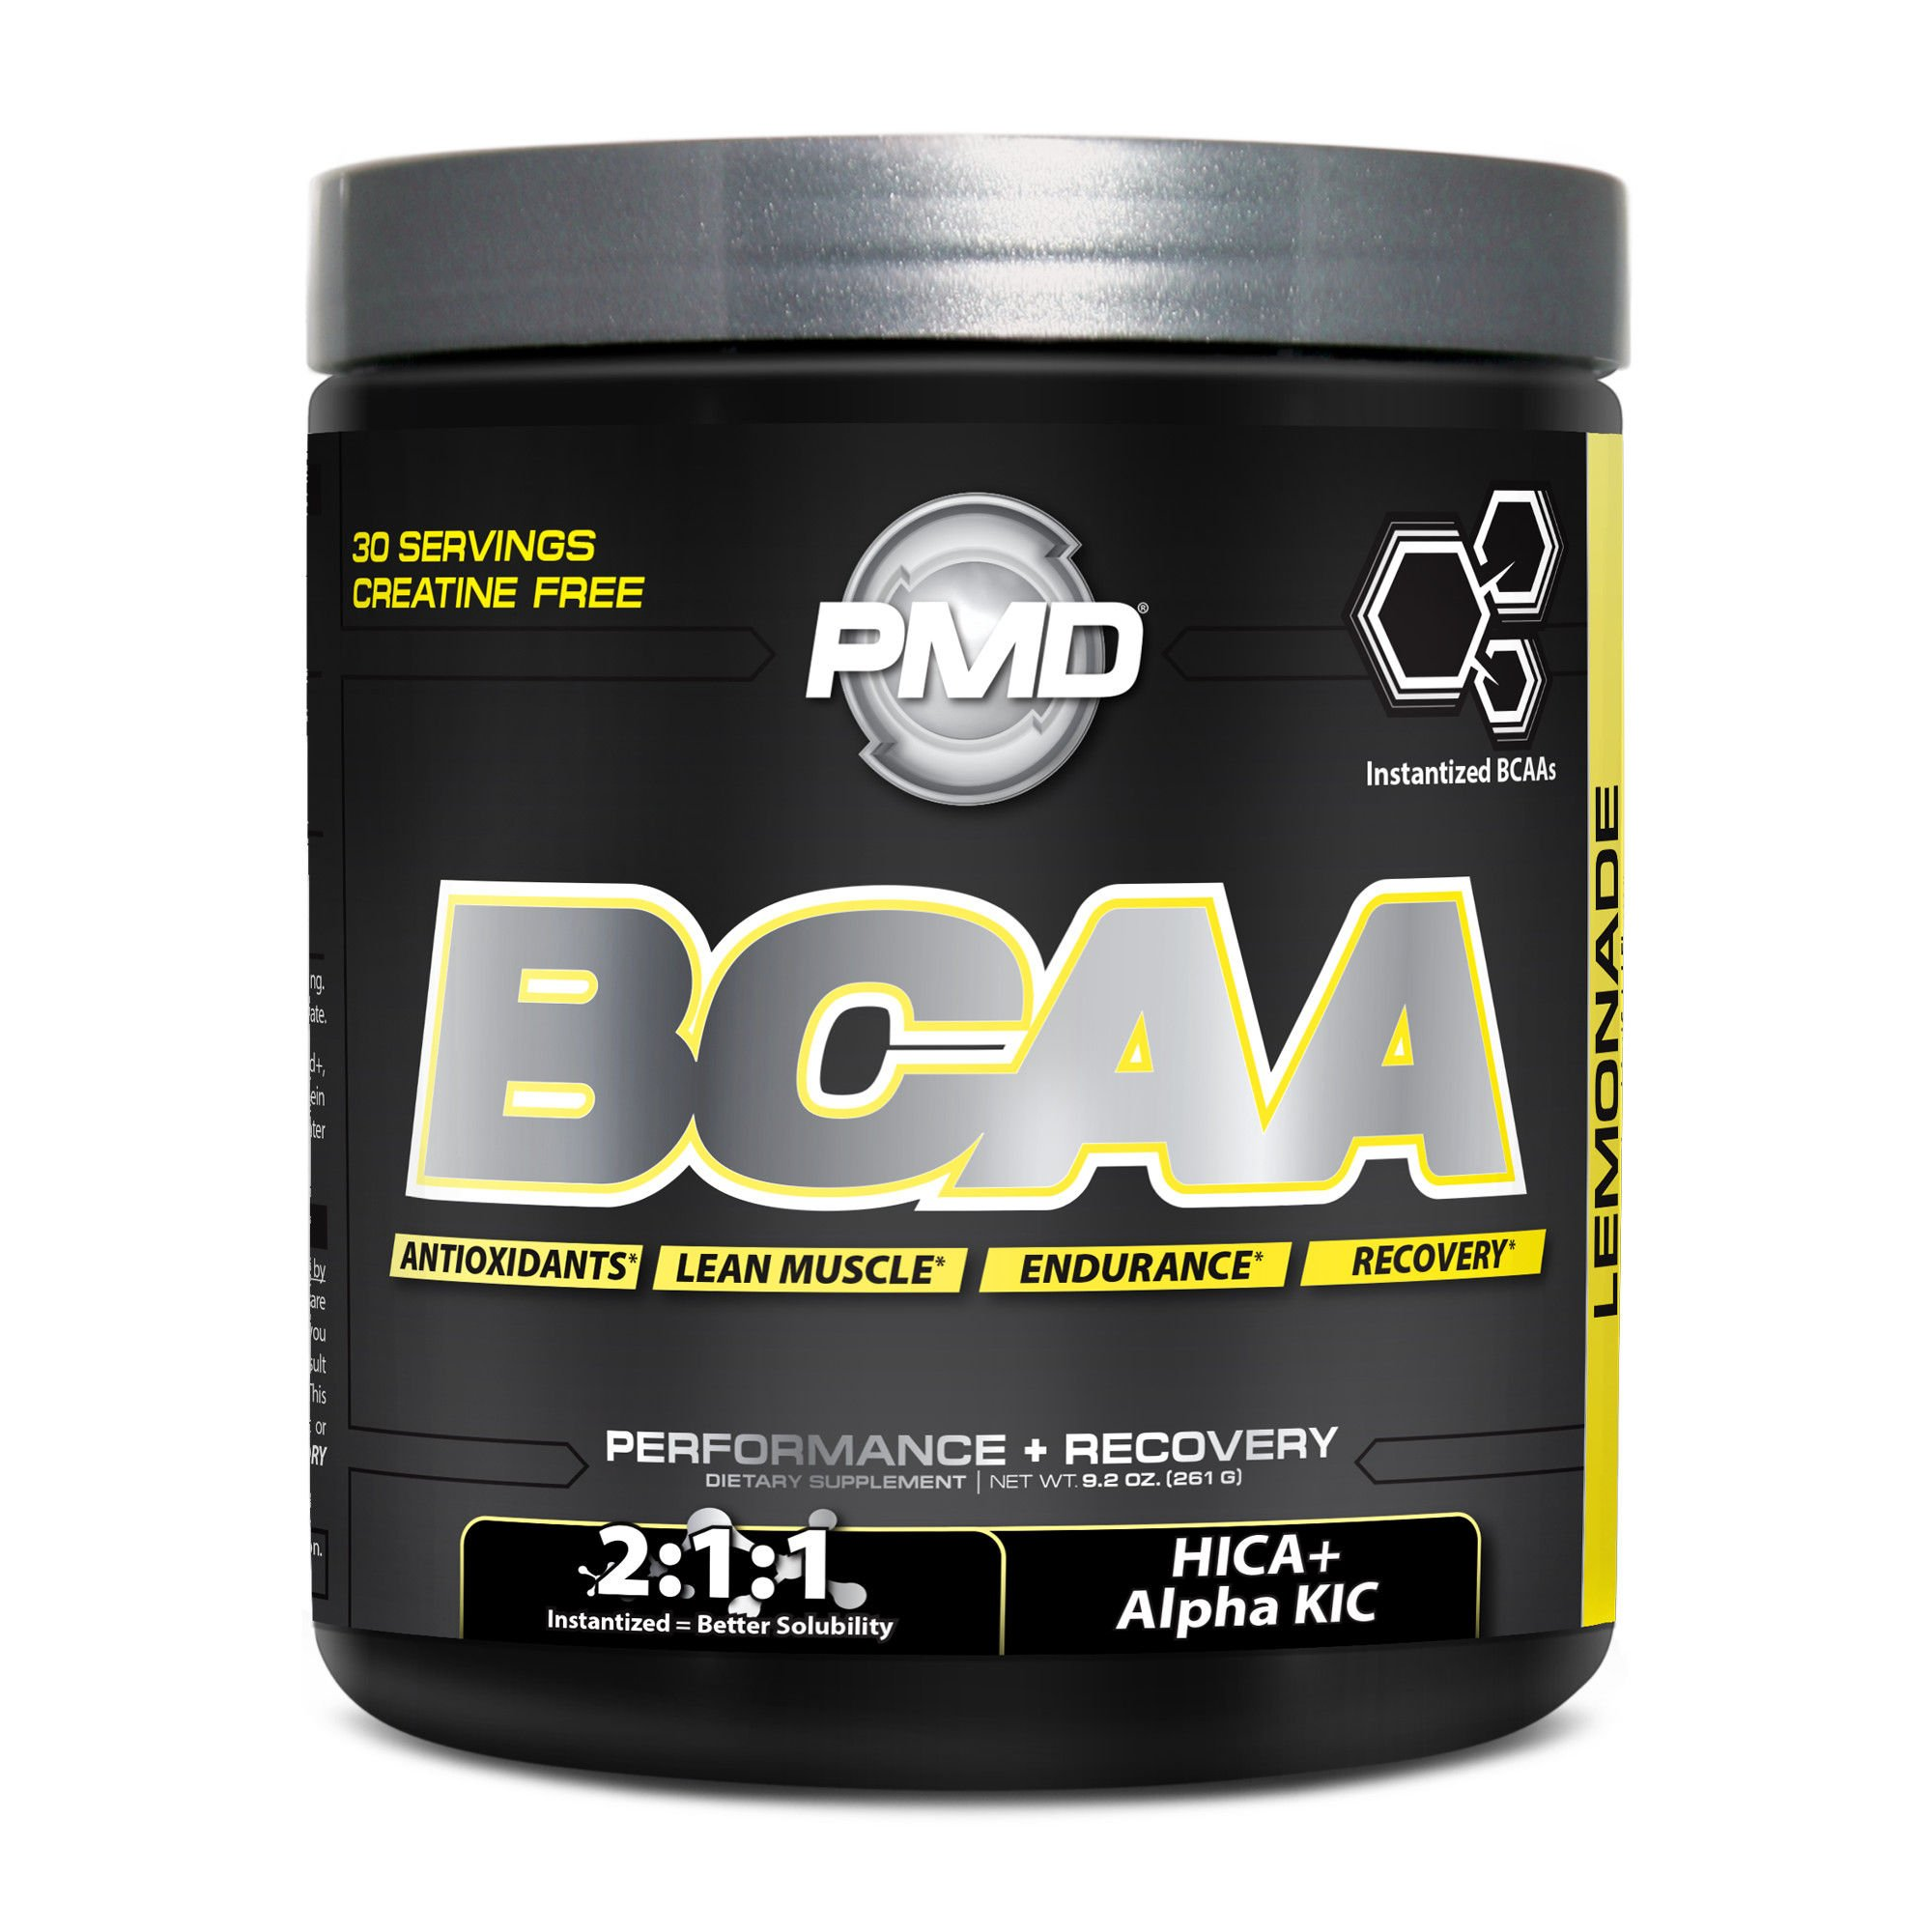 PMD Sports BCAA Delicious Amino Acid Drink for Performance and Recovery - Increase Muscle Function for Workout and Daily Energy - Lemonade - 30 Servings